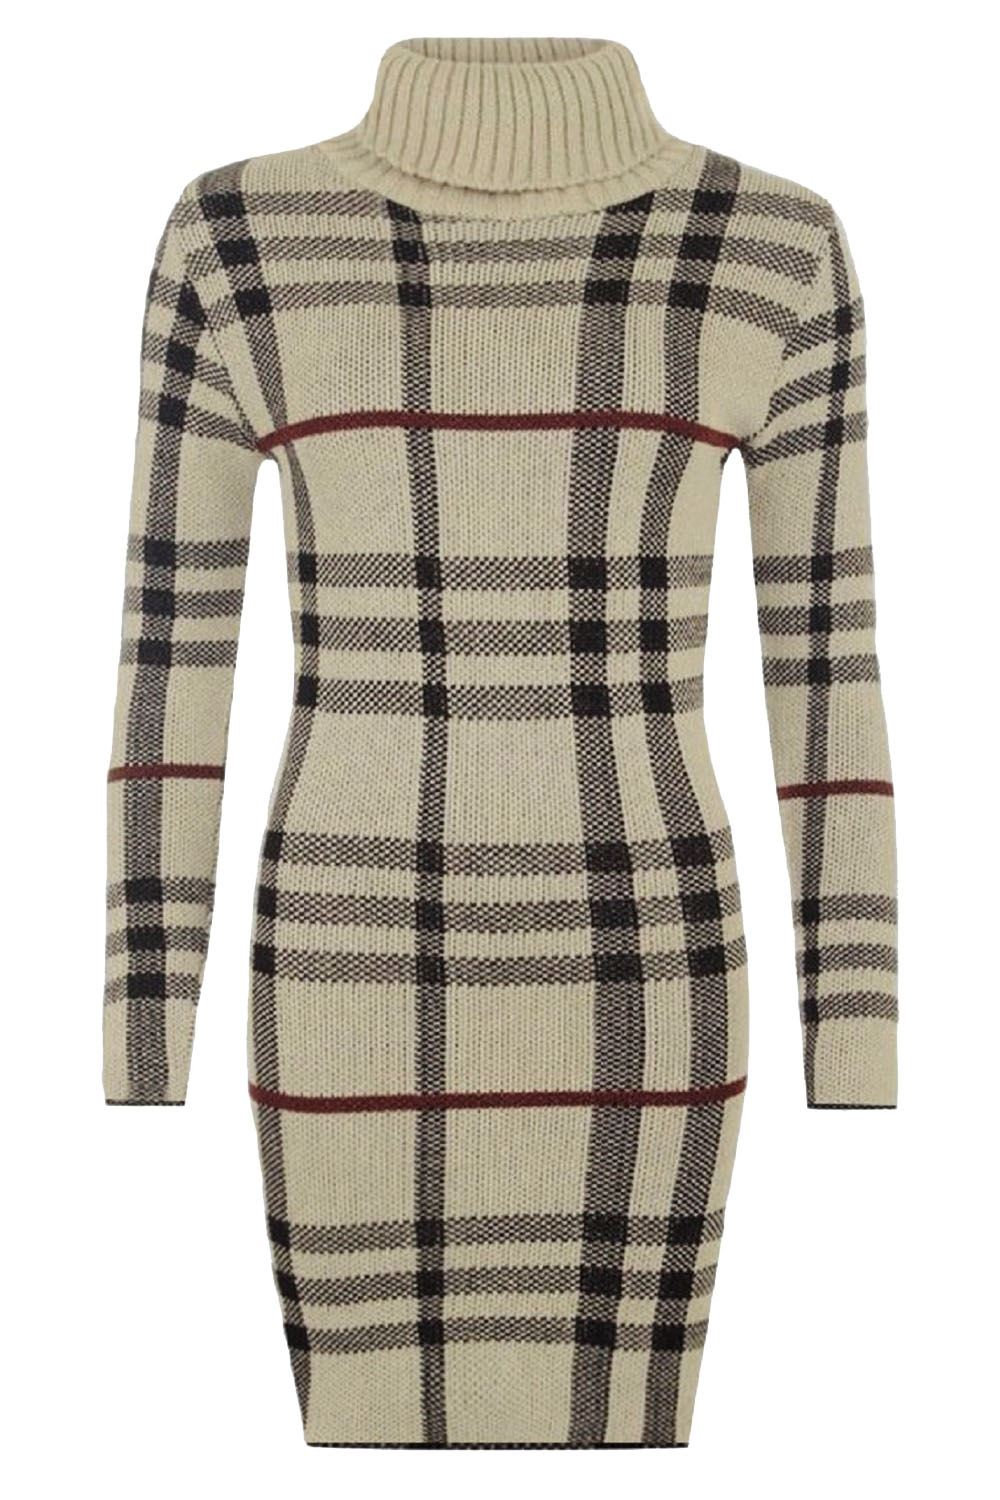 New-Ladies-Womens-Knitted-TARTAN-Check-POLO-Neck-Long-Sleeves-Bodycon-MIDI-Dress